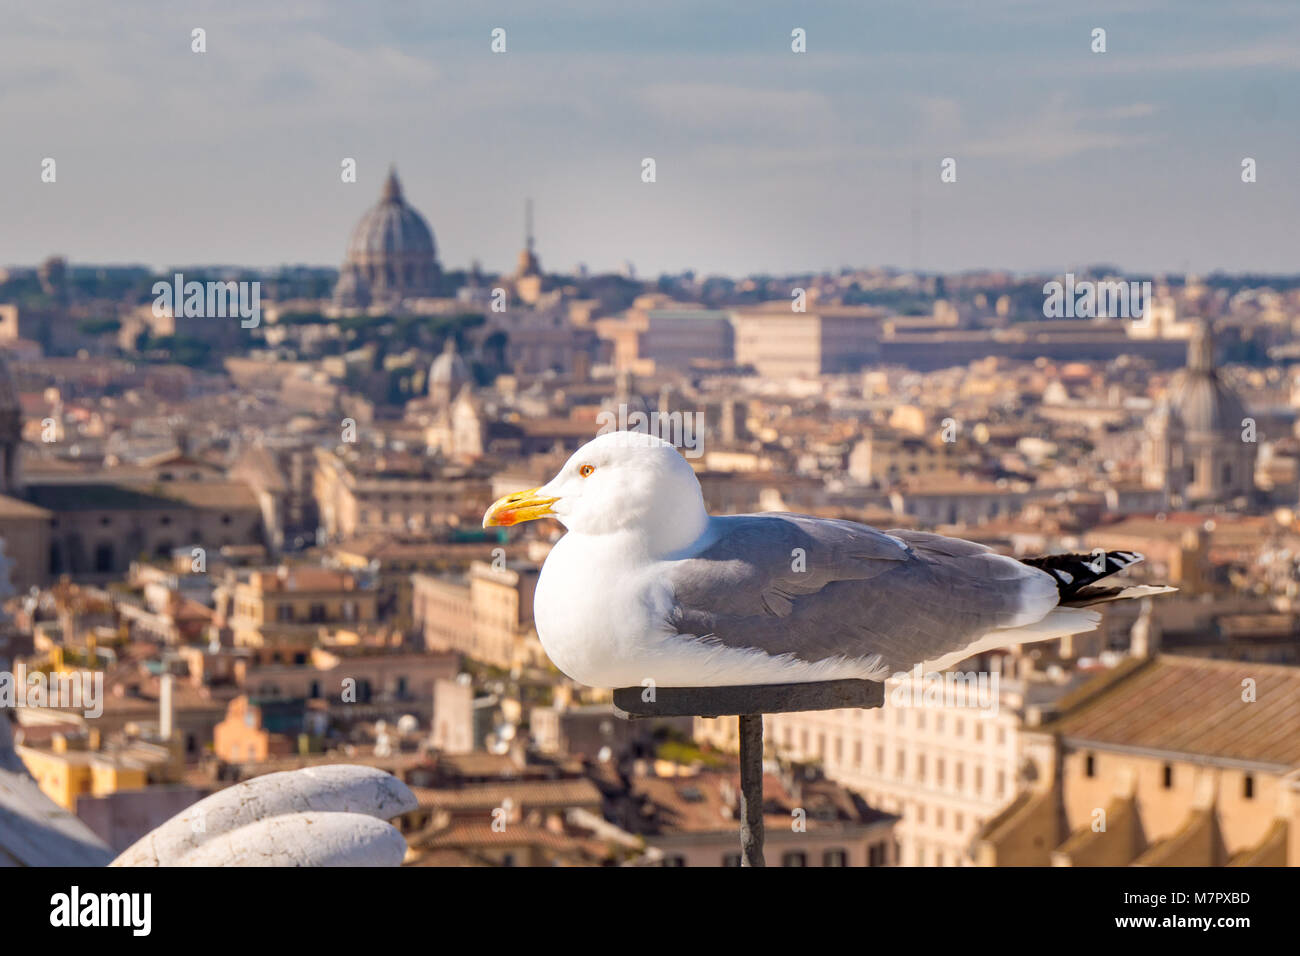 Seagull on top of Rome skyline - Stock Image